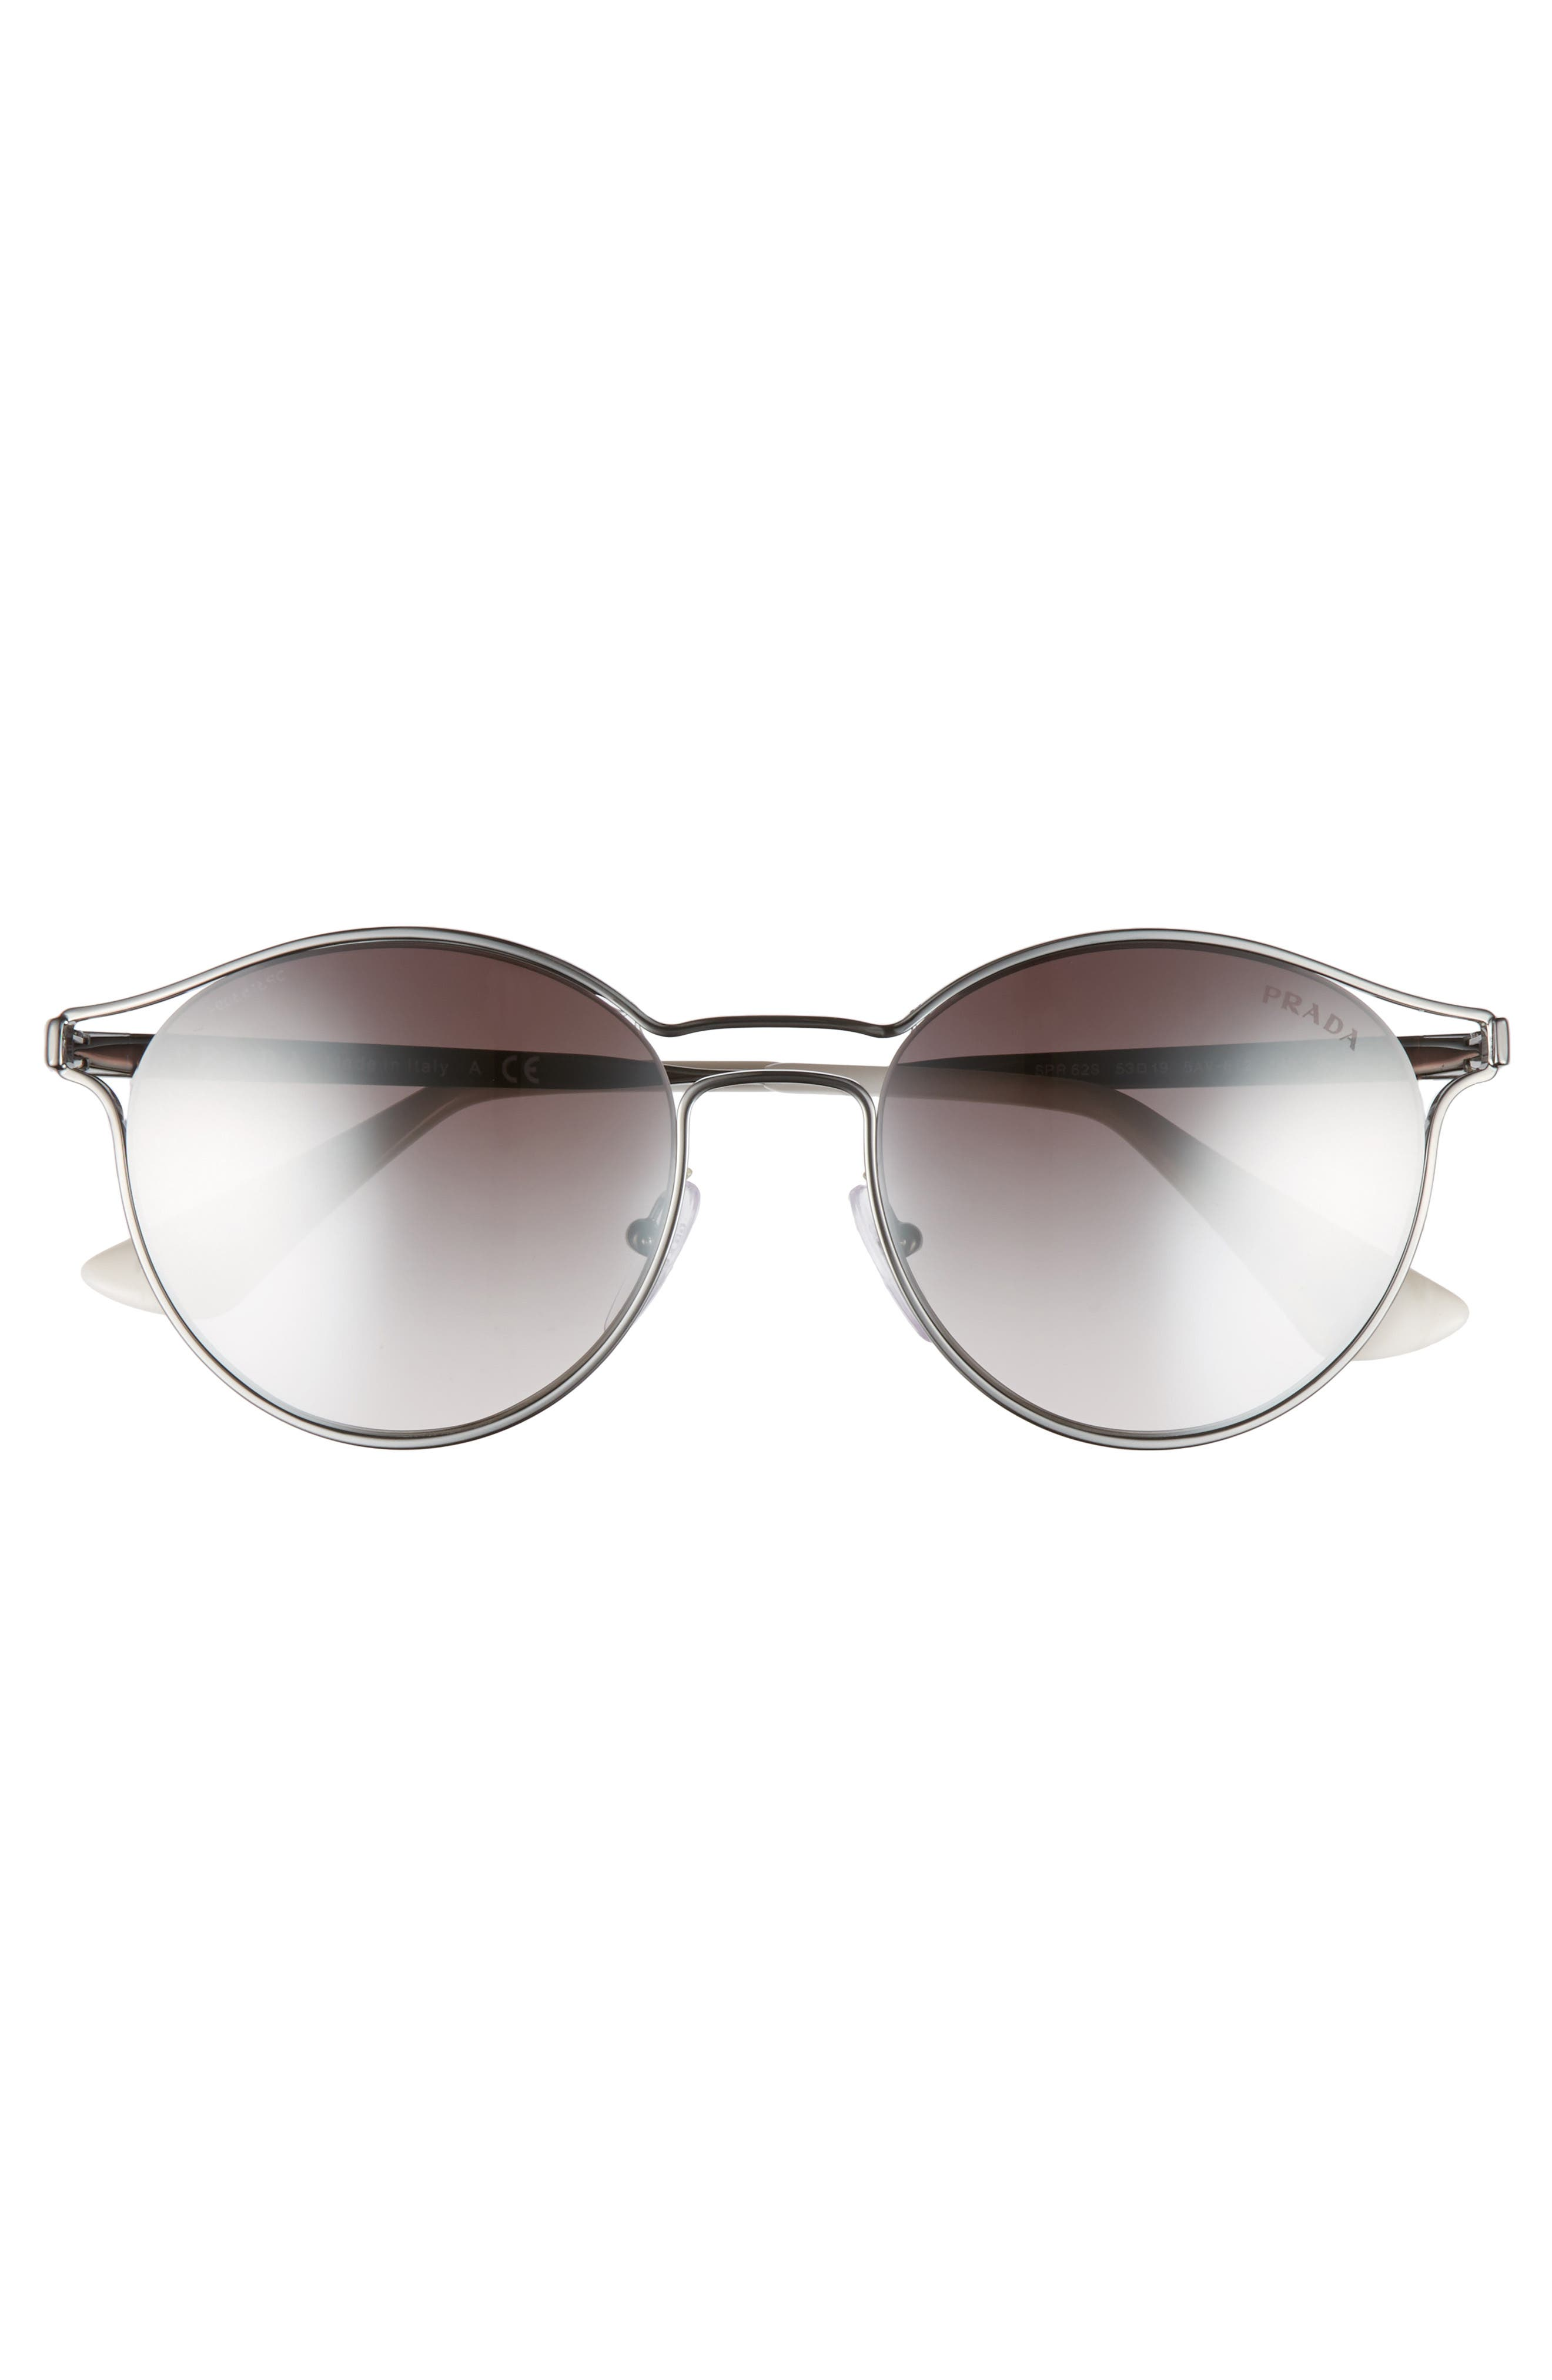 53mm Round Mirrored Sunglasses,                             Alternate thumbnail 4, color,                             062